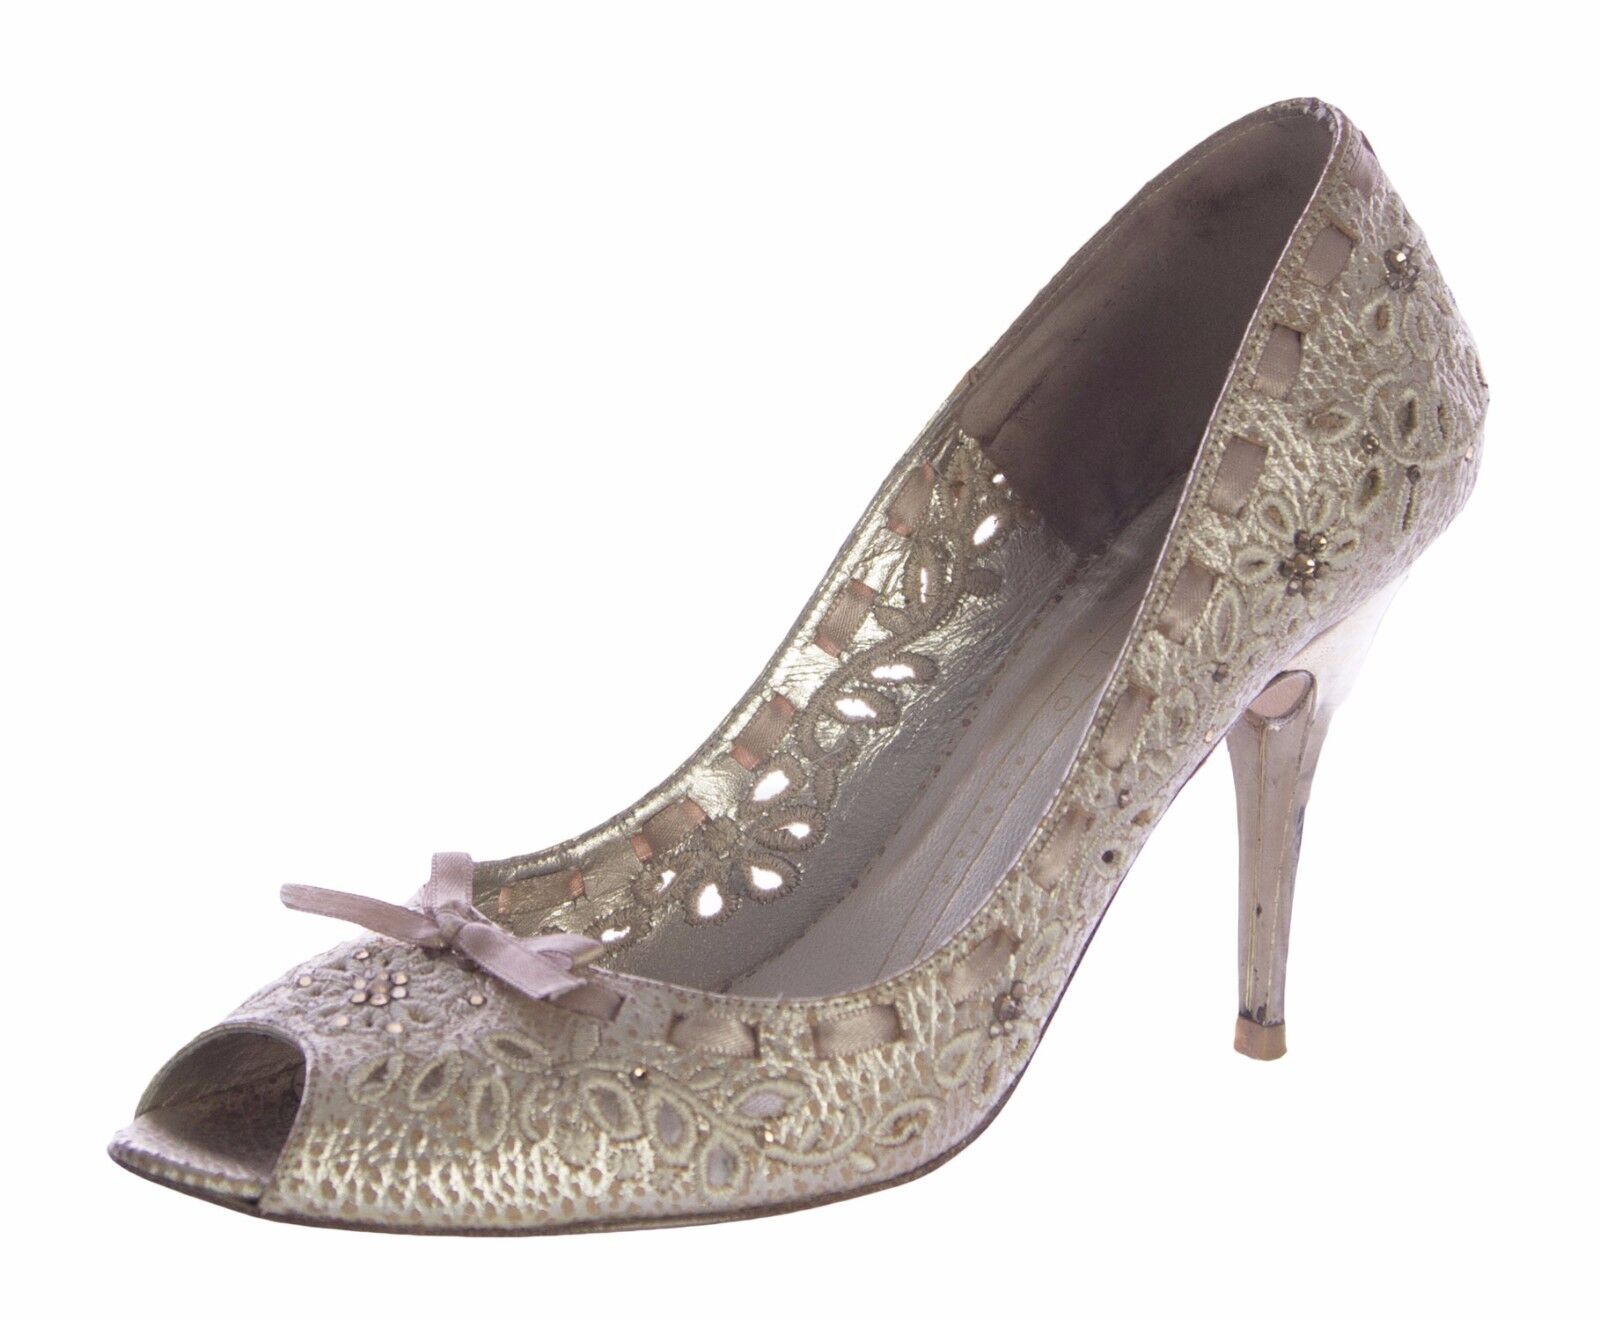 POLETTO Women's Gold / Nude Laced Beaded High Heel Classic Pumps EU Size 37 5